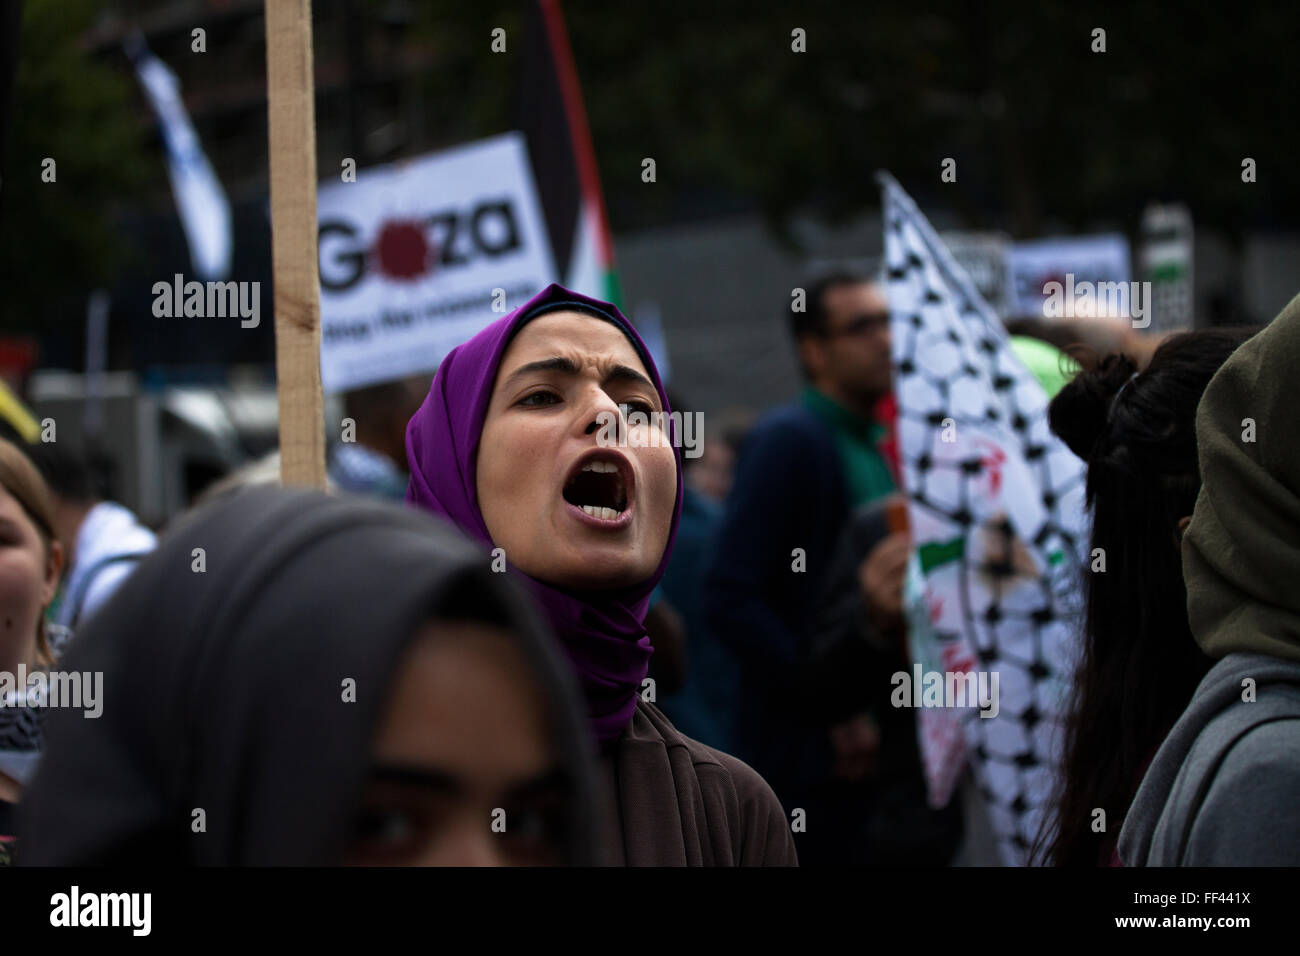 A young pro-Palestine activist protests in Westminster to end the siege in Gaza - Stock Image